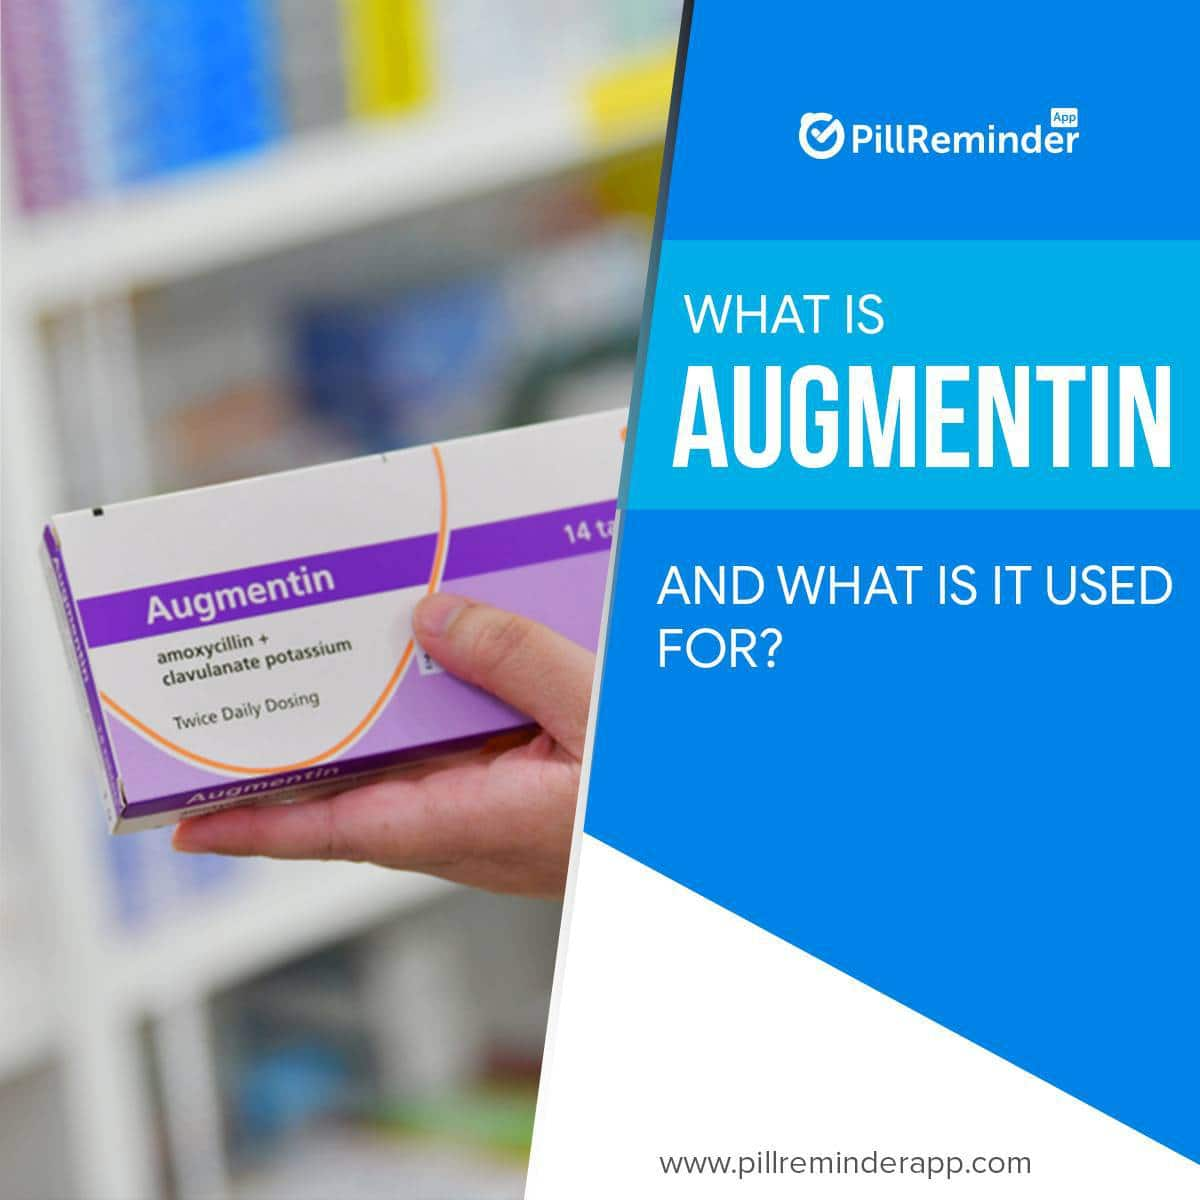 What Is Augmentin And What Is It Used For